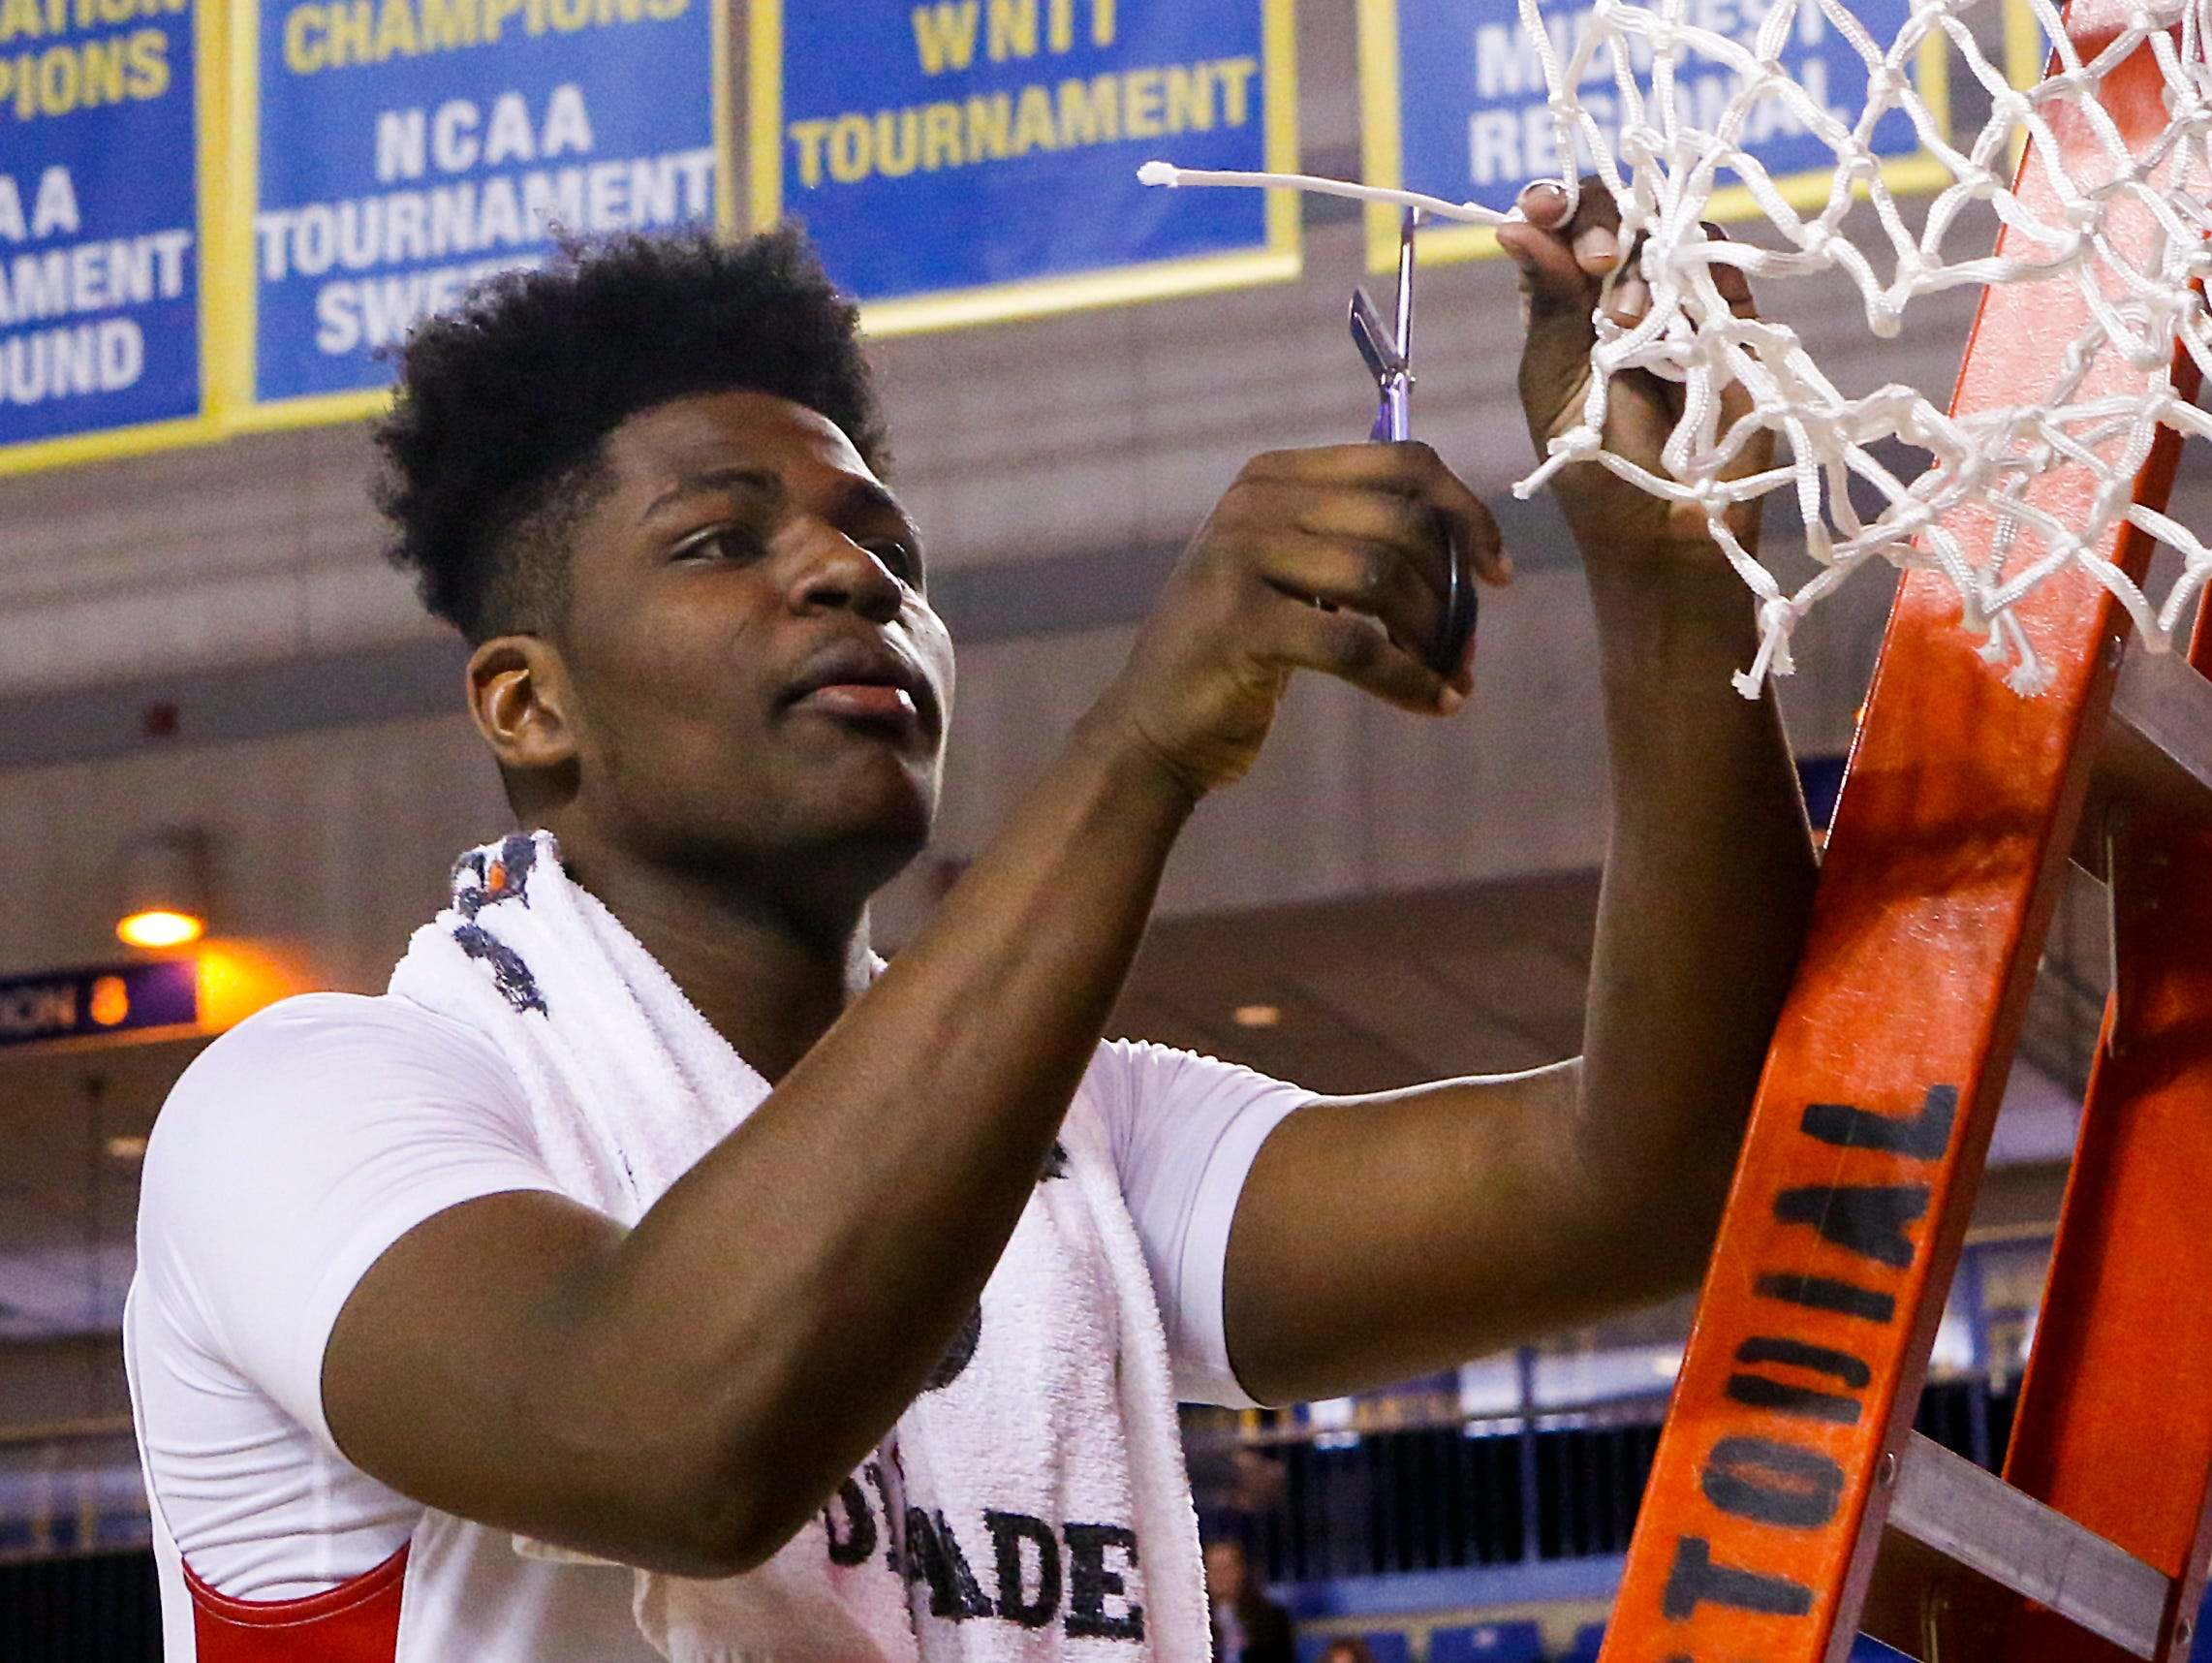 Smyrna's Jaymeir Garnett takes his piece of the net after the Eagles' 61-53 win in the DIAA state tournament title game at the Bob Carpenter Center on March 11.